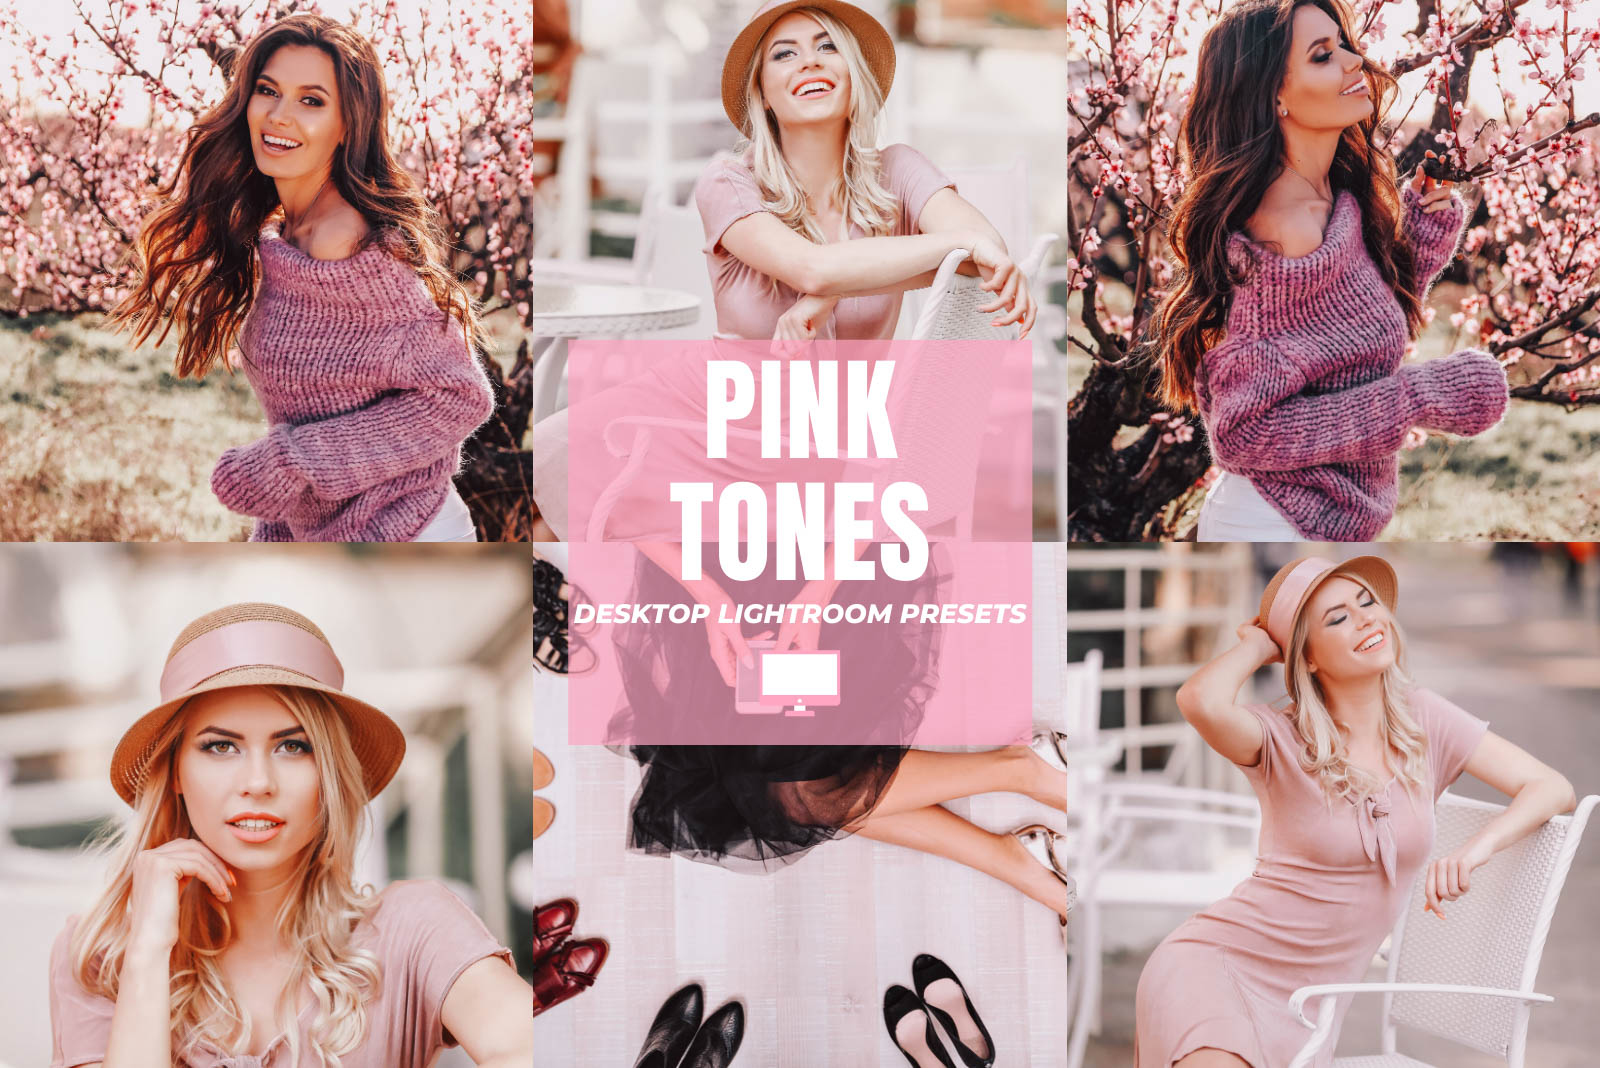 PINK TONES DESKTOP LIGHTROOM PRESETS